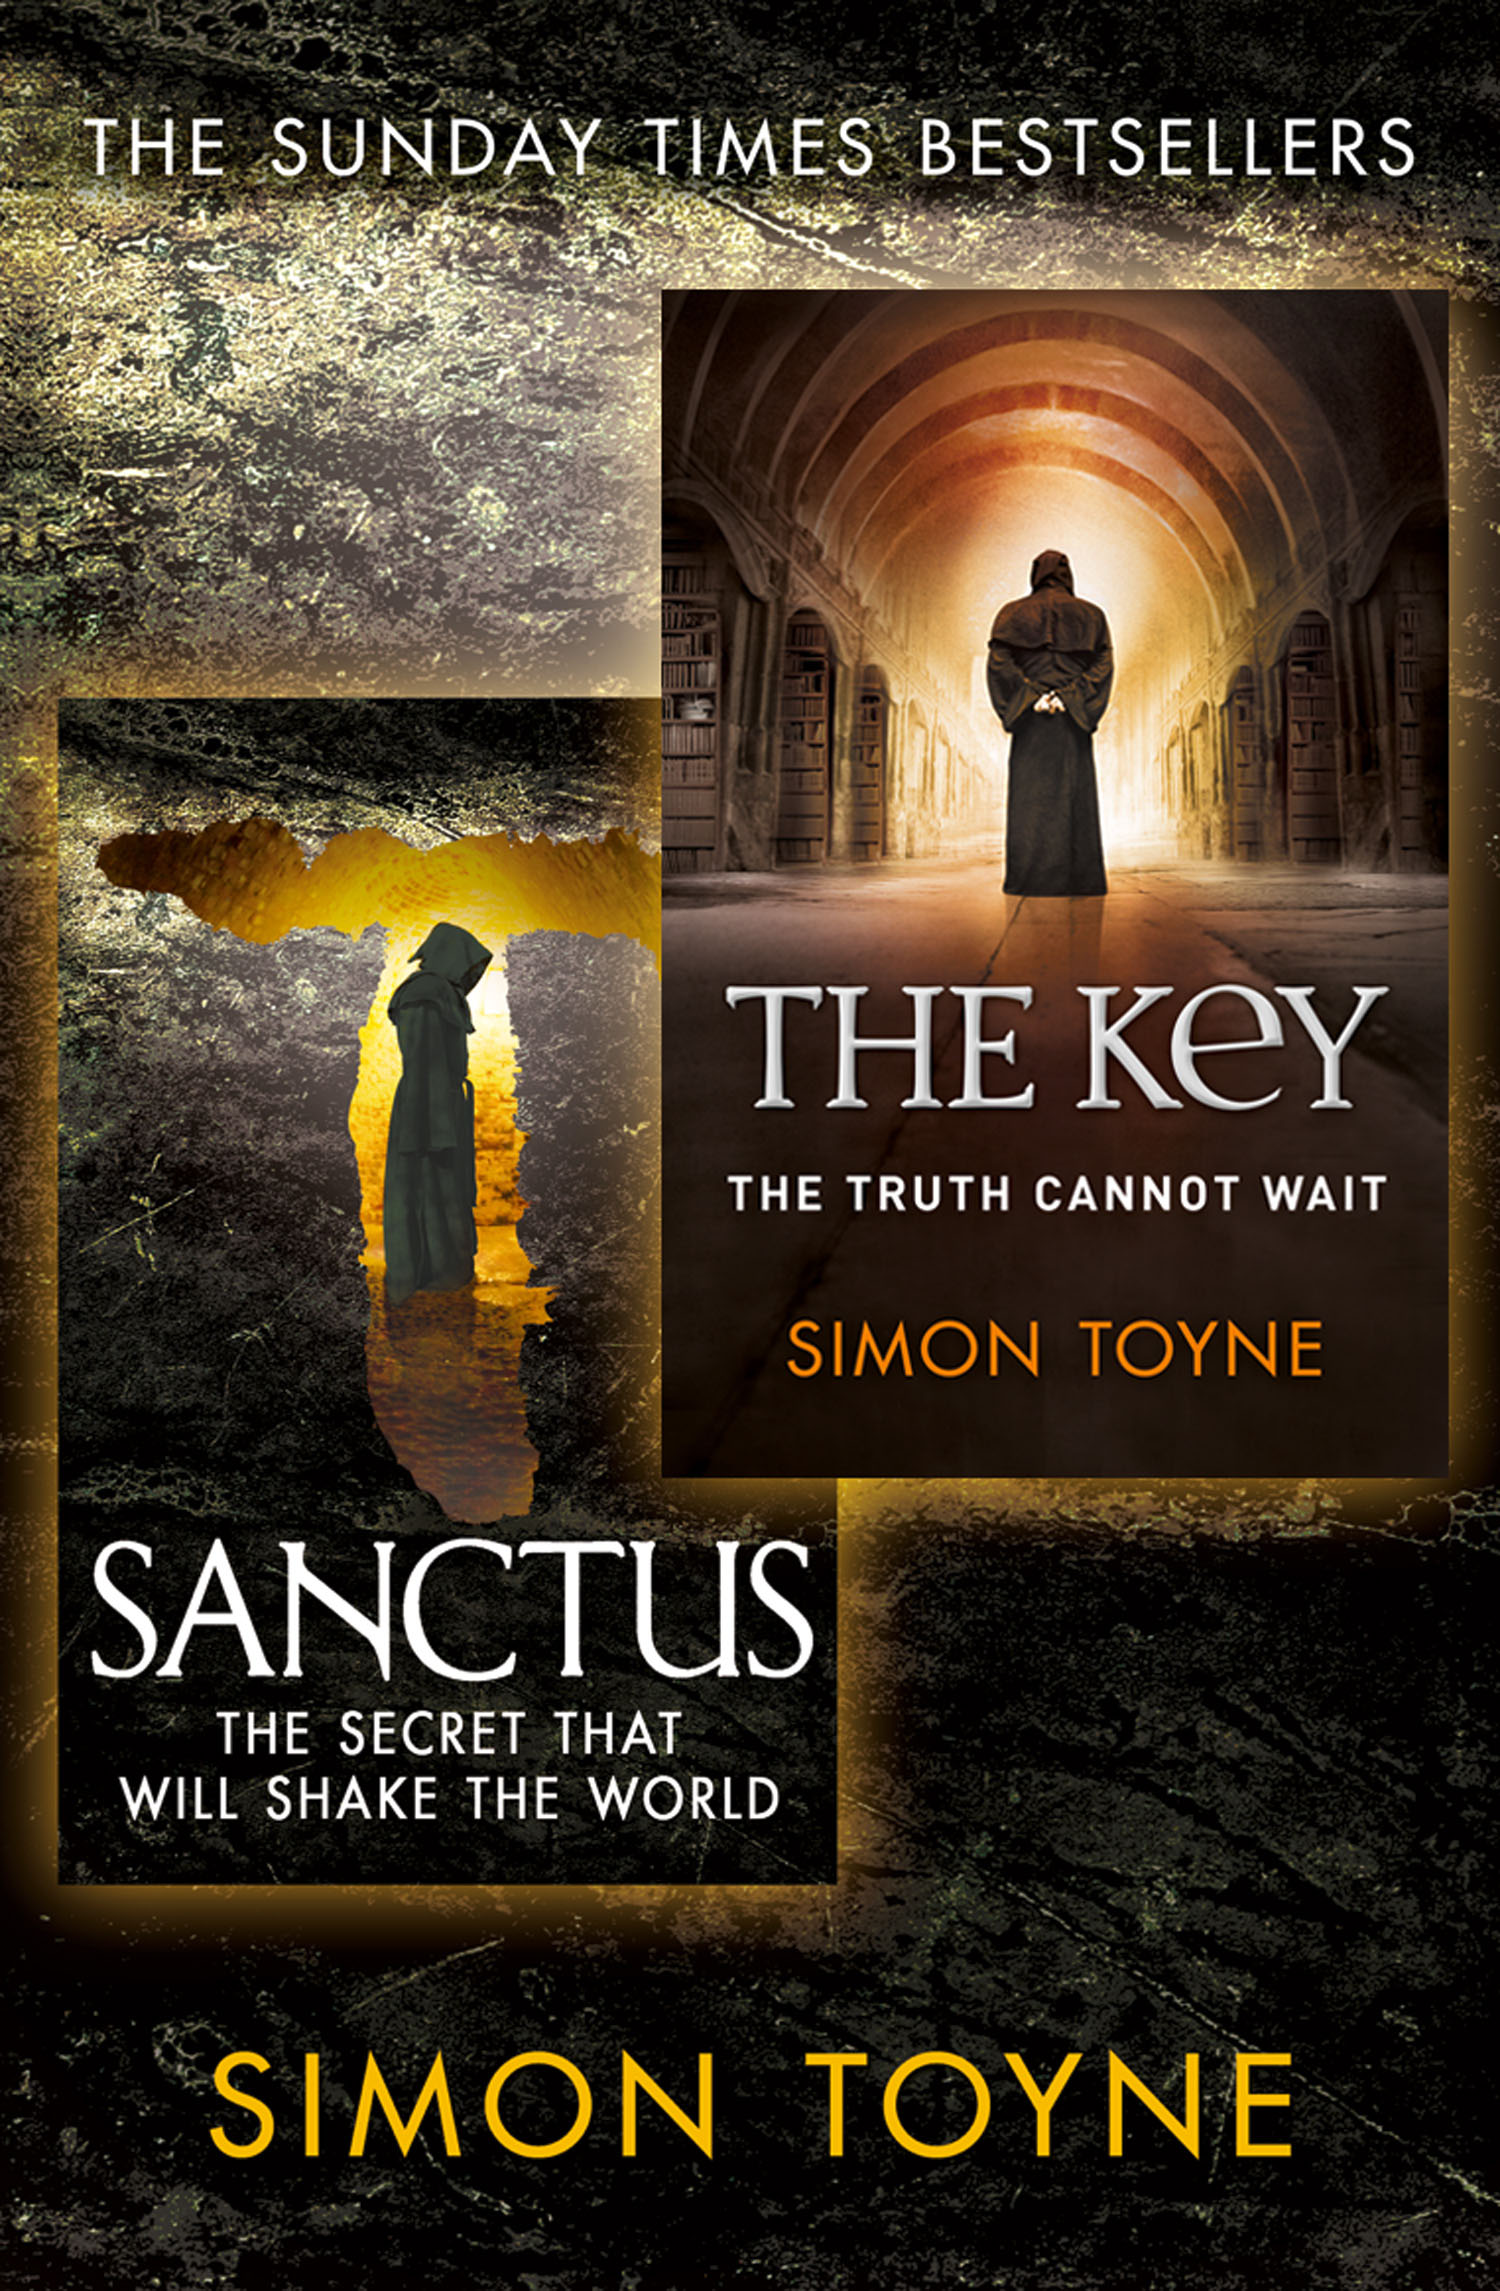 Sanctus and The Key